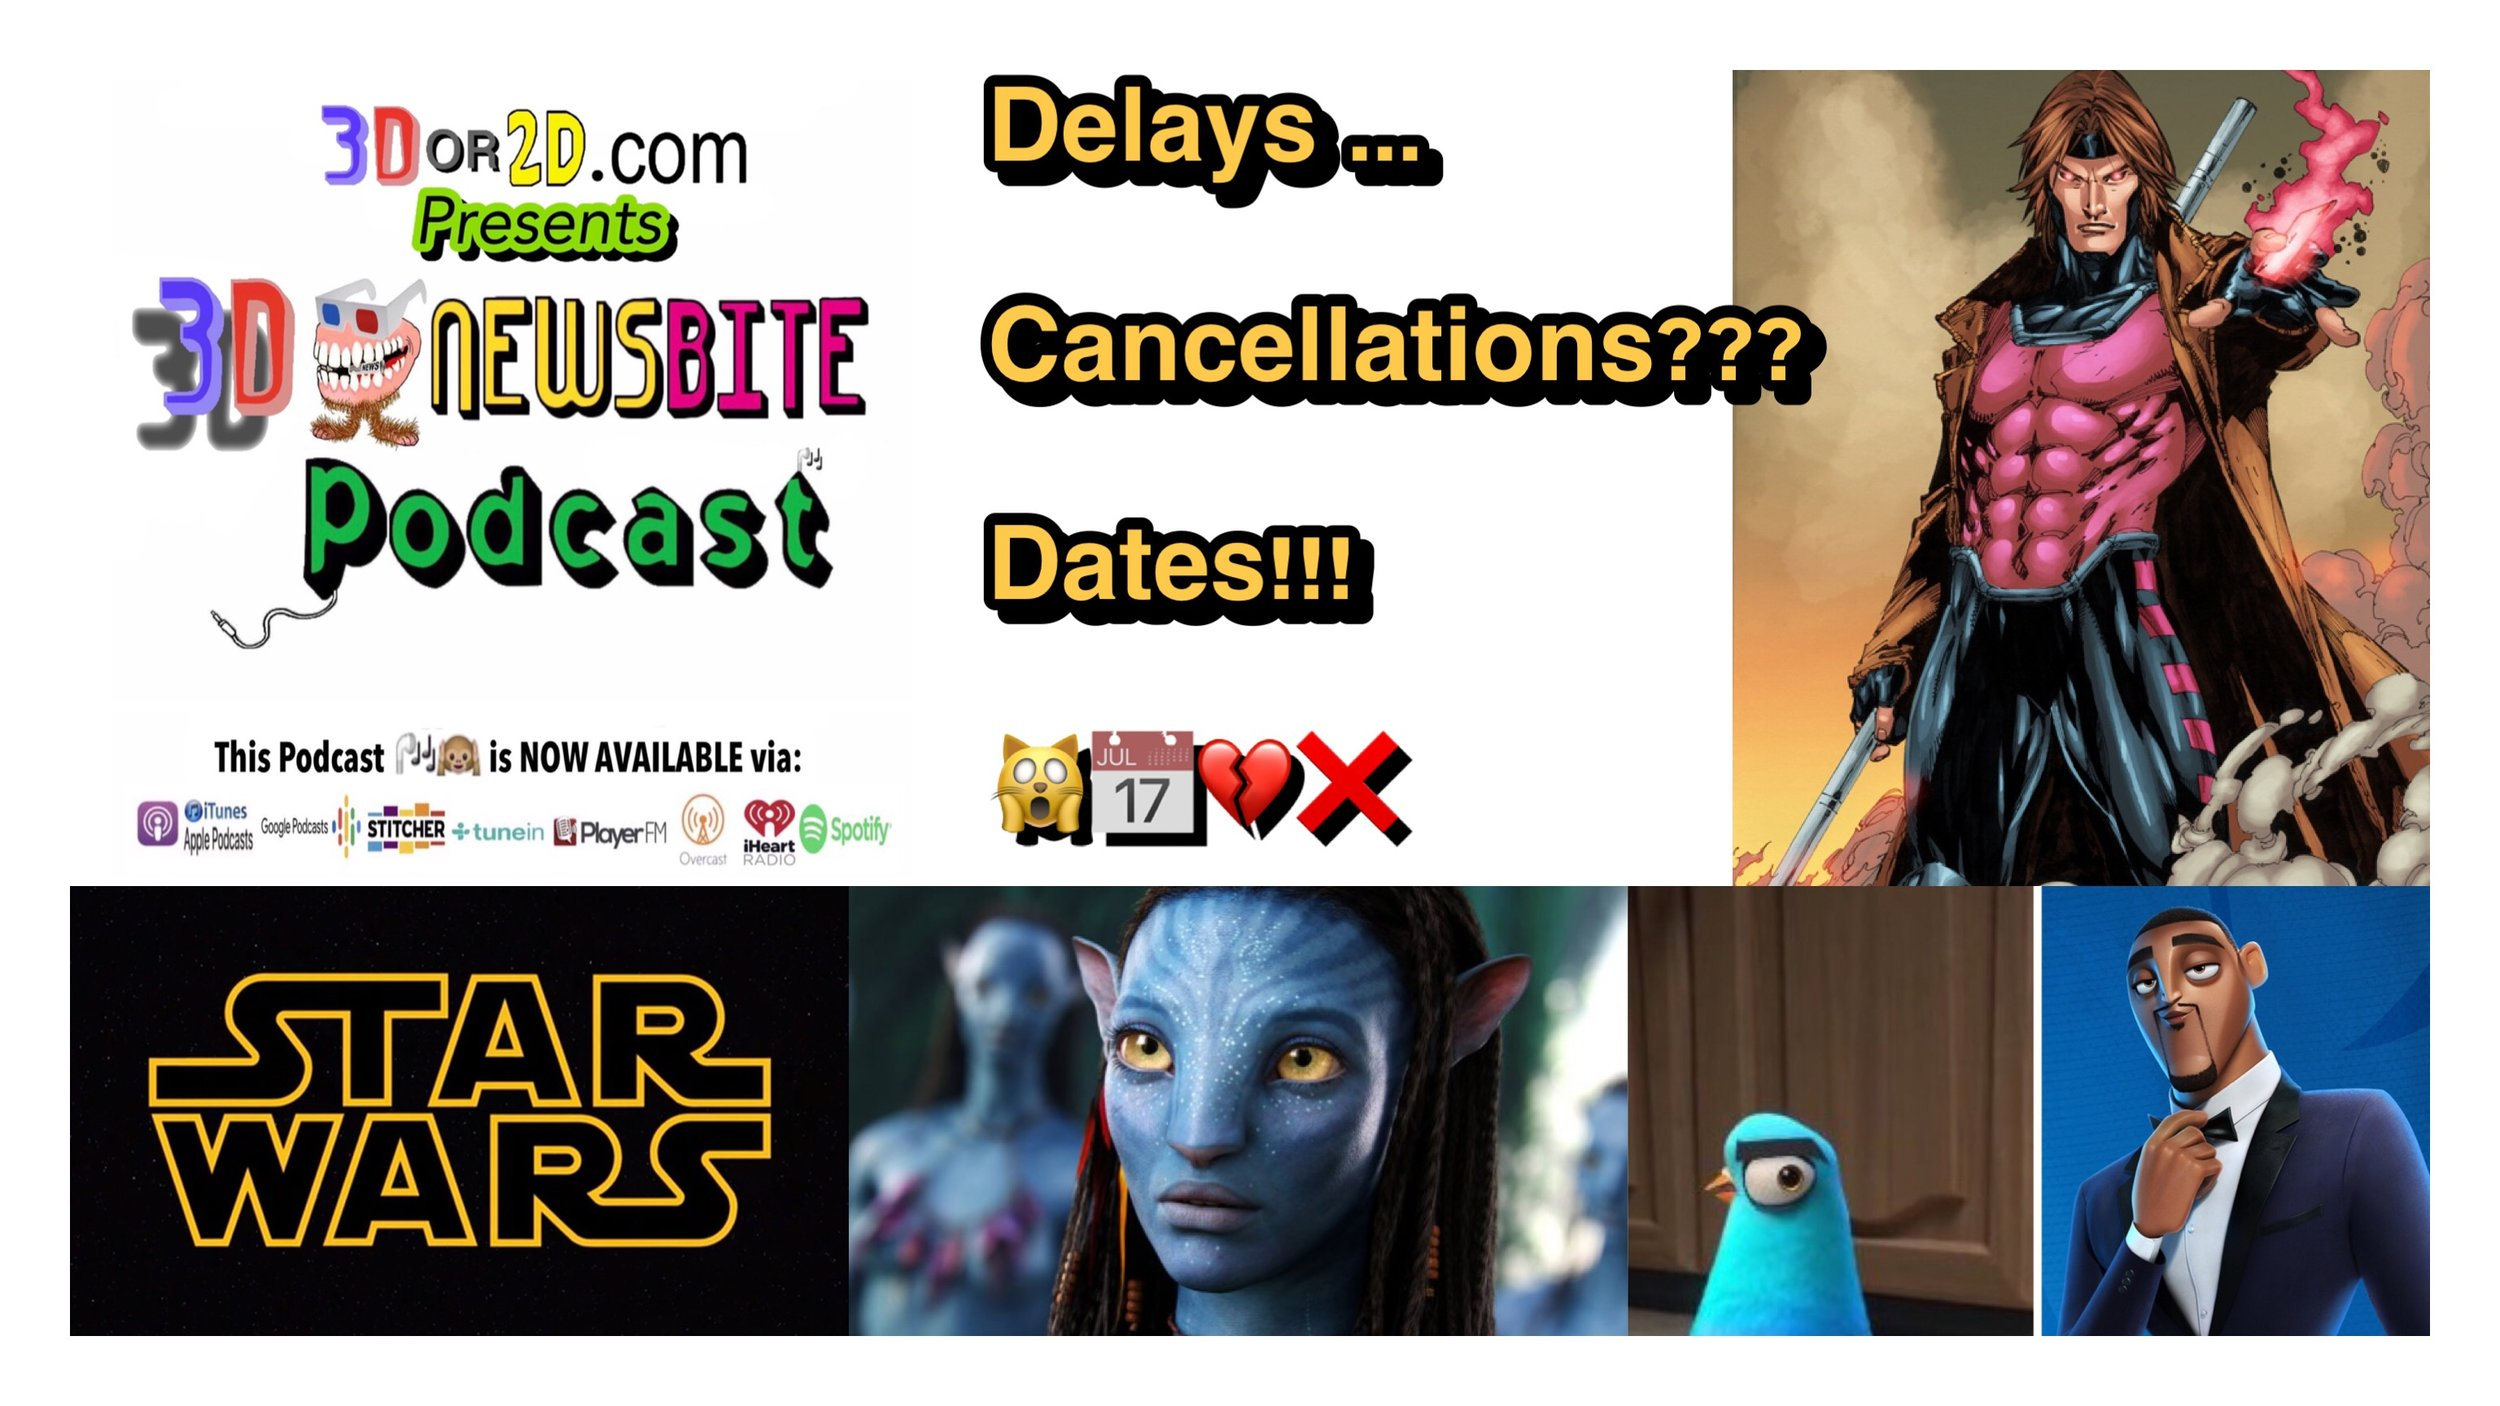 3d-newsbite-podcast-delays.JPG